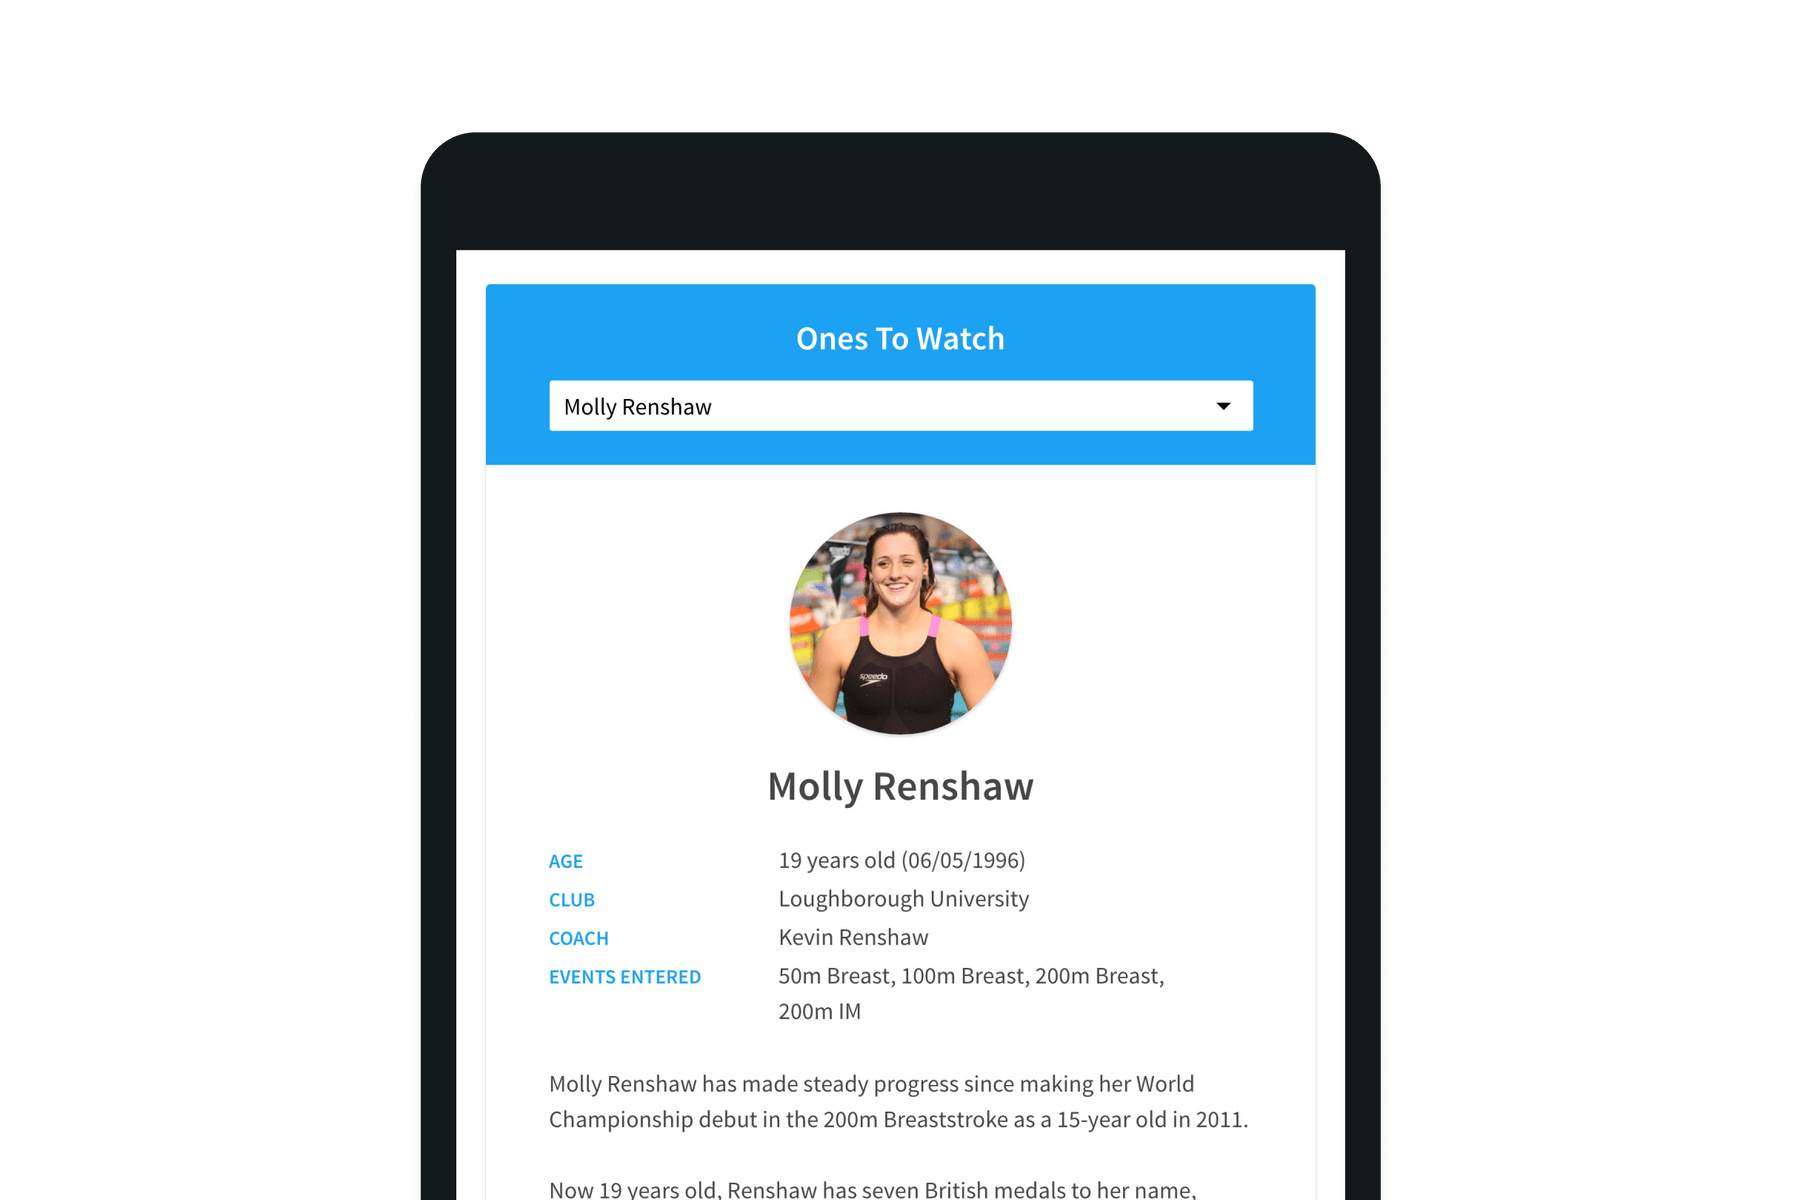 Tablet showing Molly Rensaw's stats